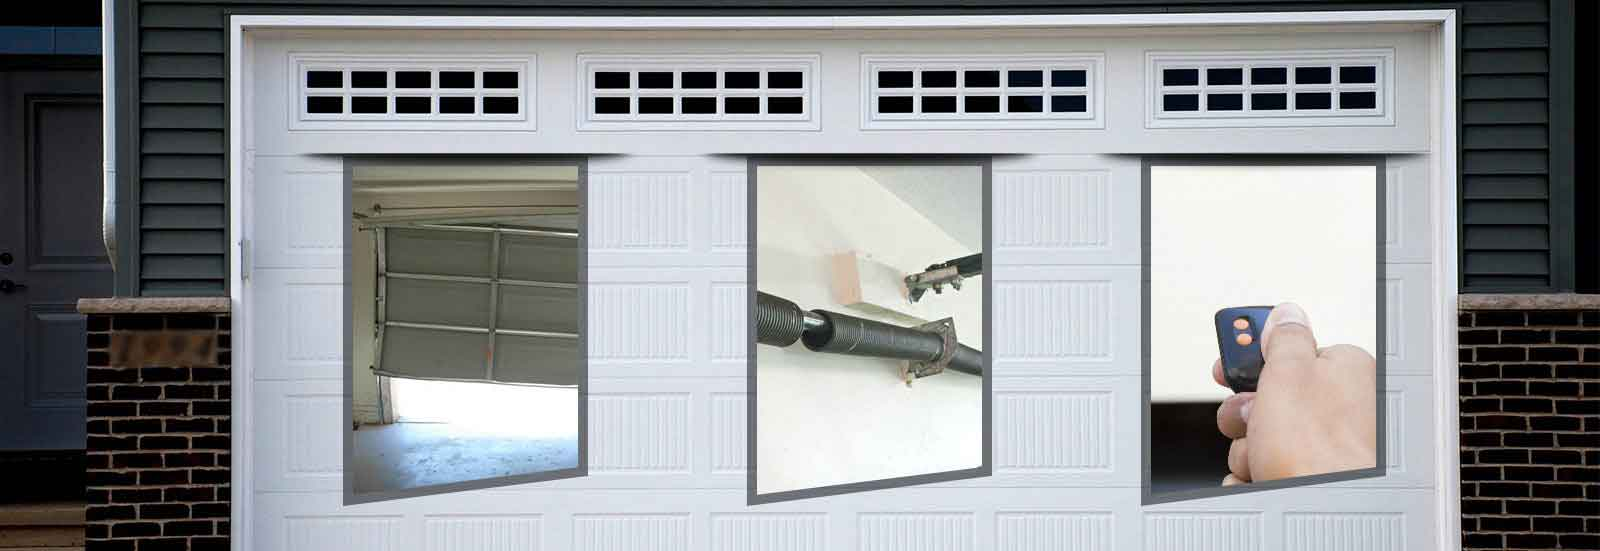 door coach sectional company sleaford grantham services automatic garage gds new house